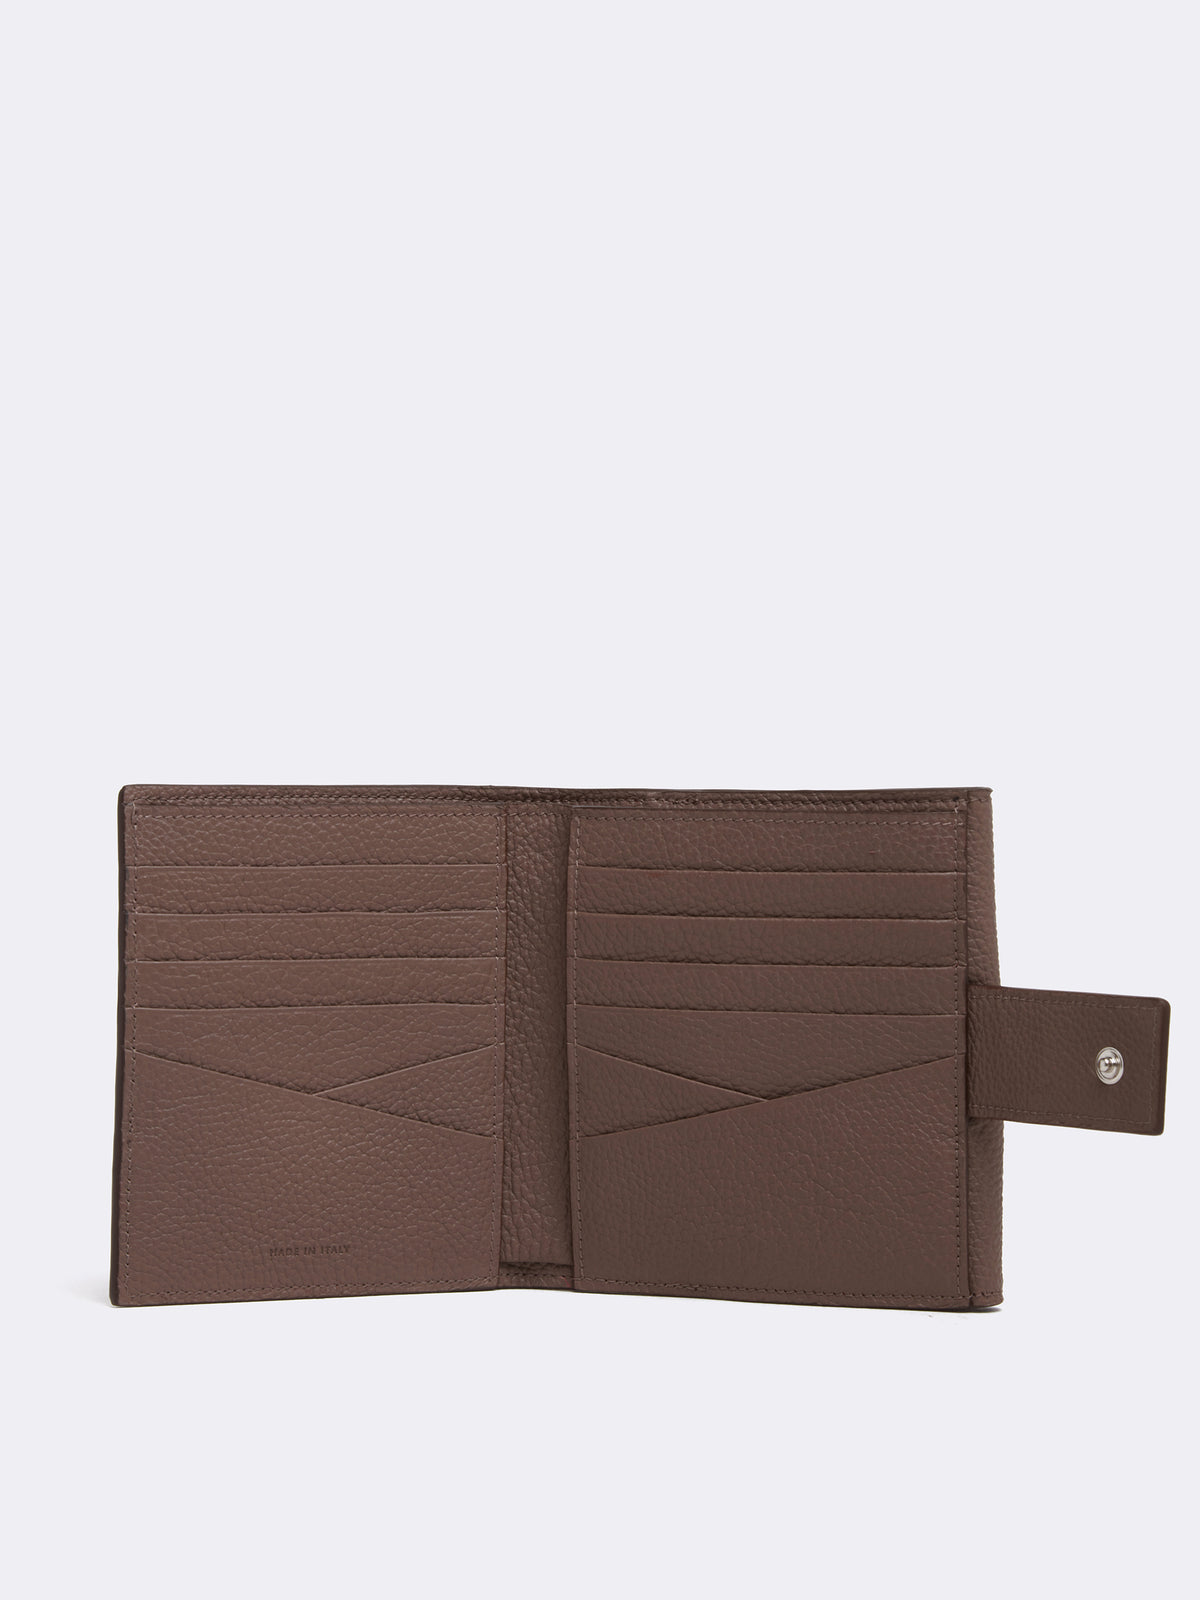 Hadley Leather French Wallet